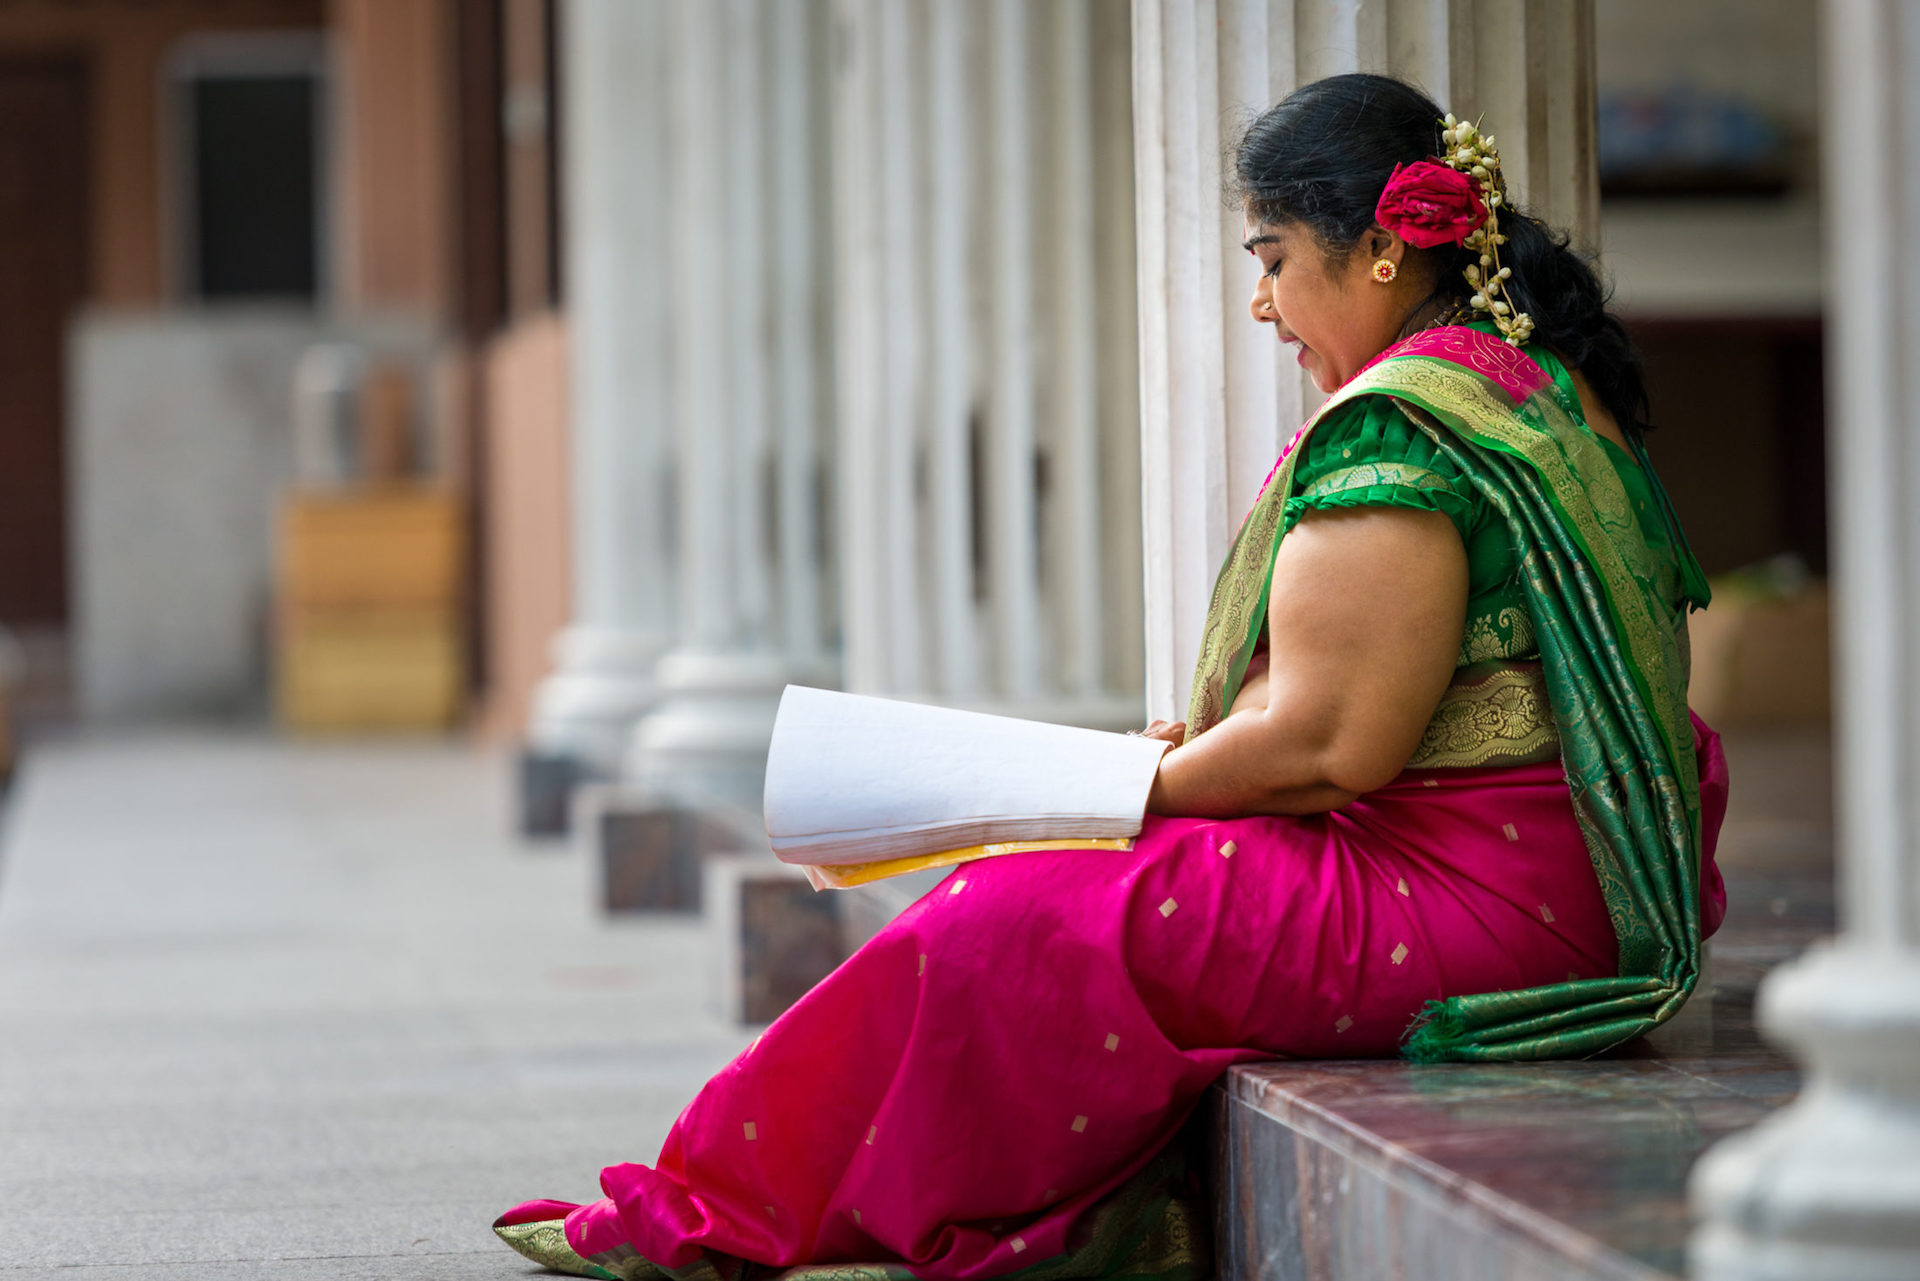 An Indian woman reads Hindu scripture at a temple in Malaysia. Photo from the IMB Photo Library.